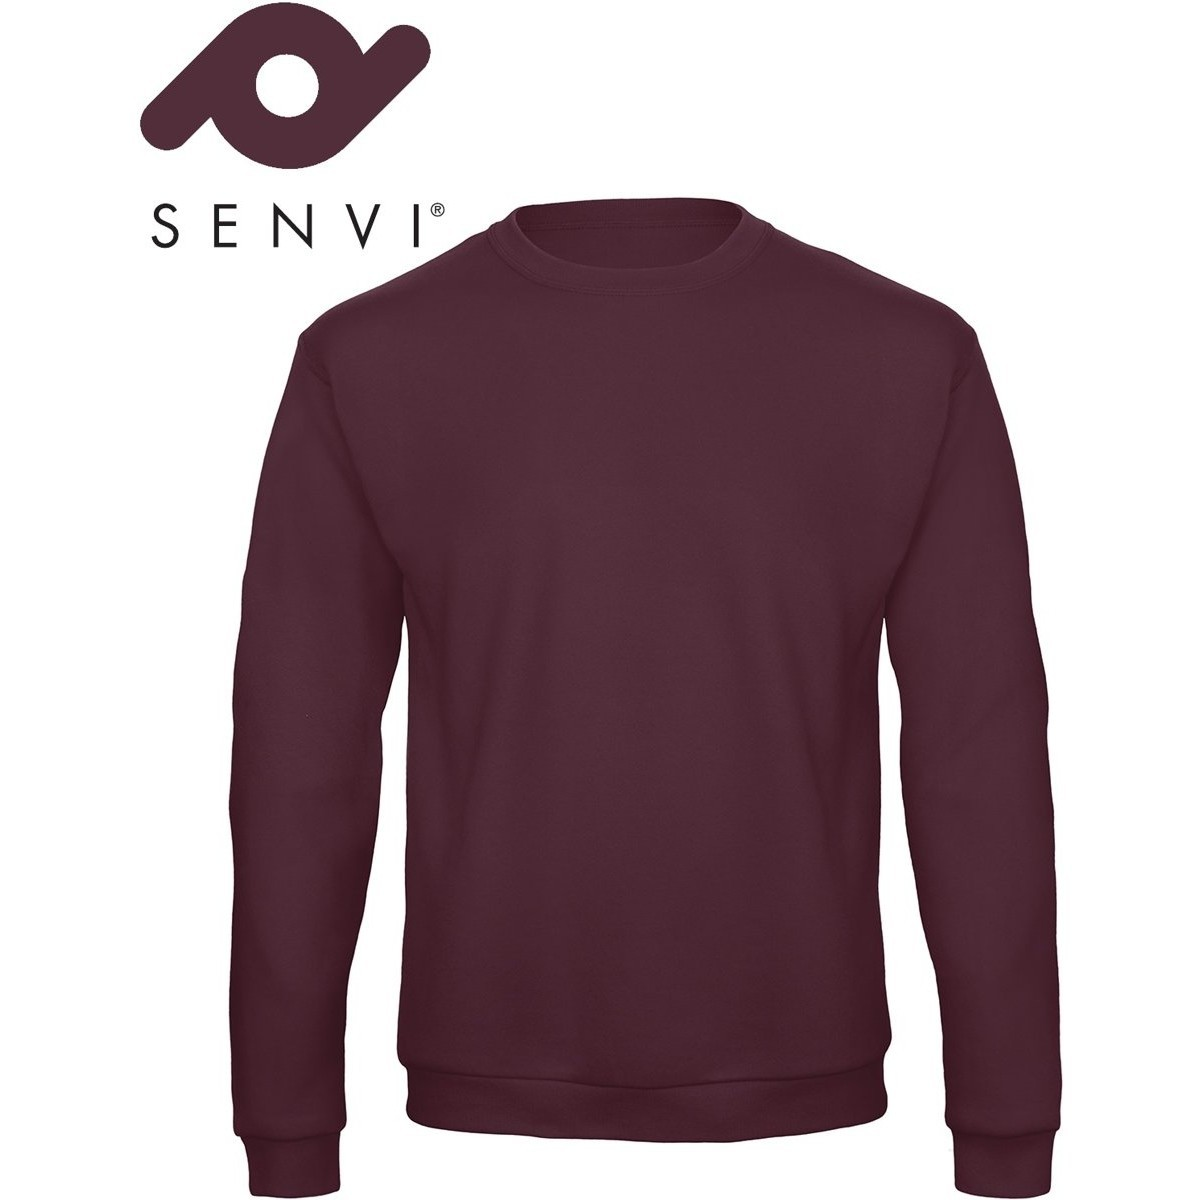 Senvi Basic Sweater (Kleur: Burgundy) - (Maat L)